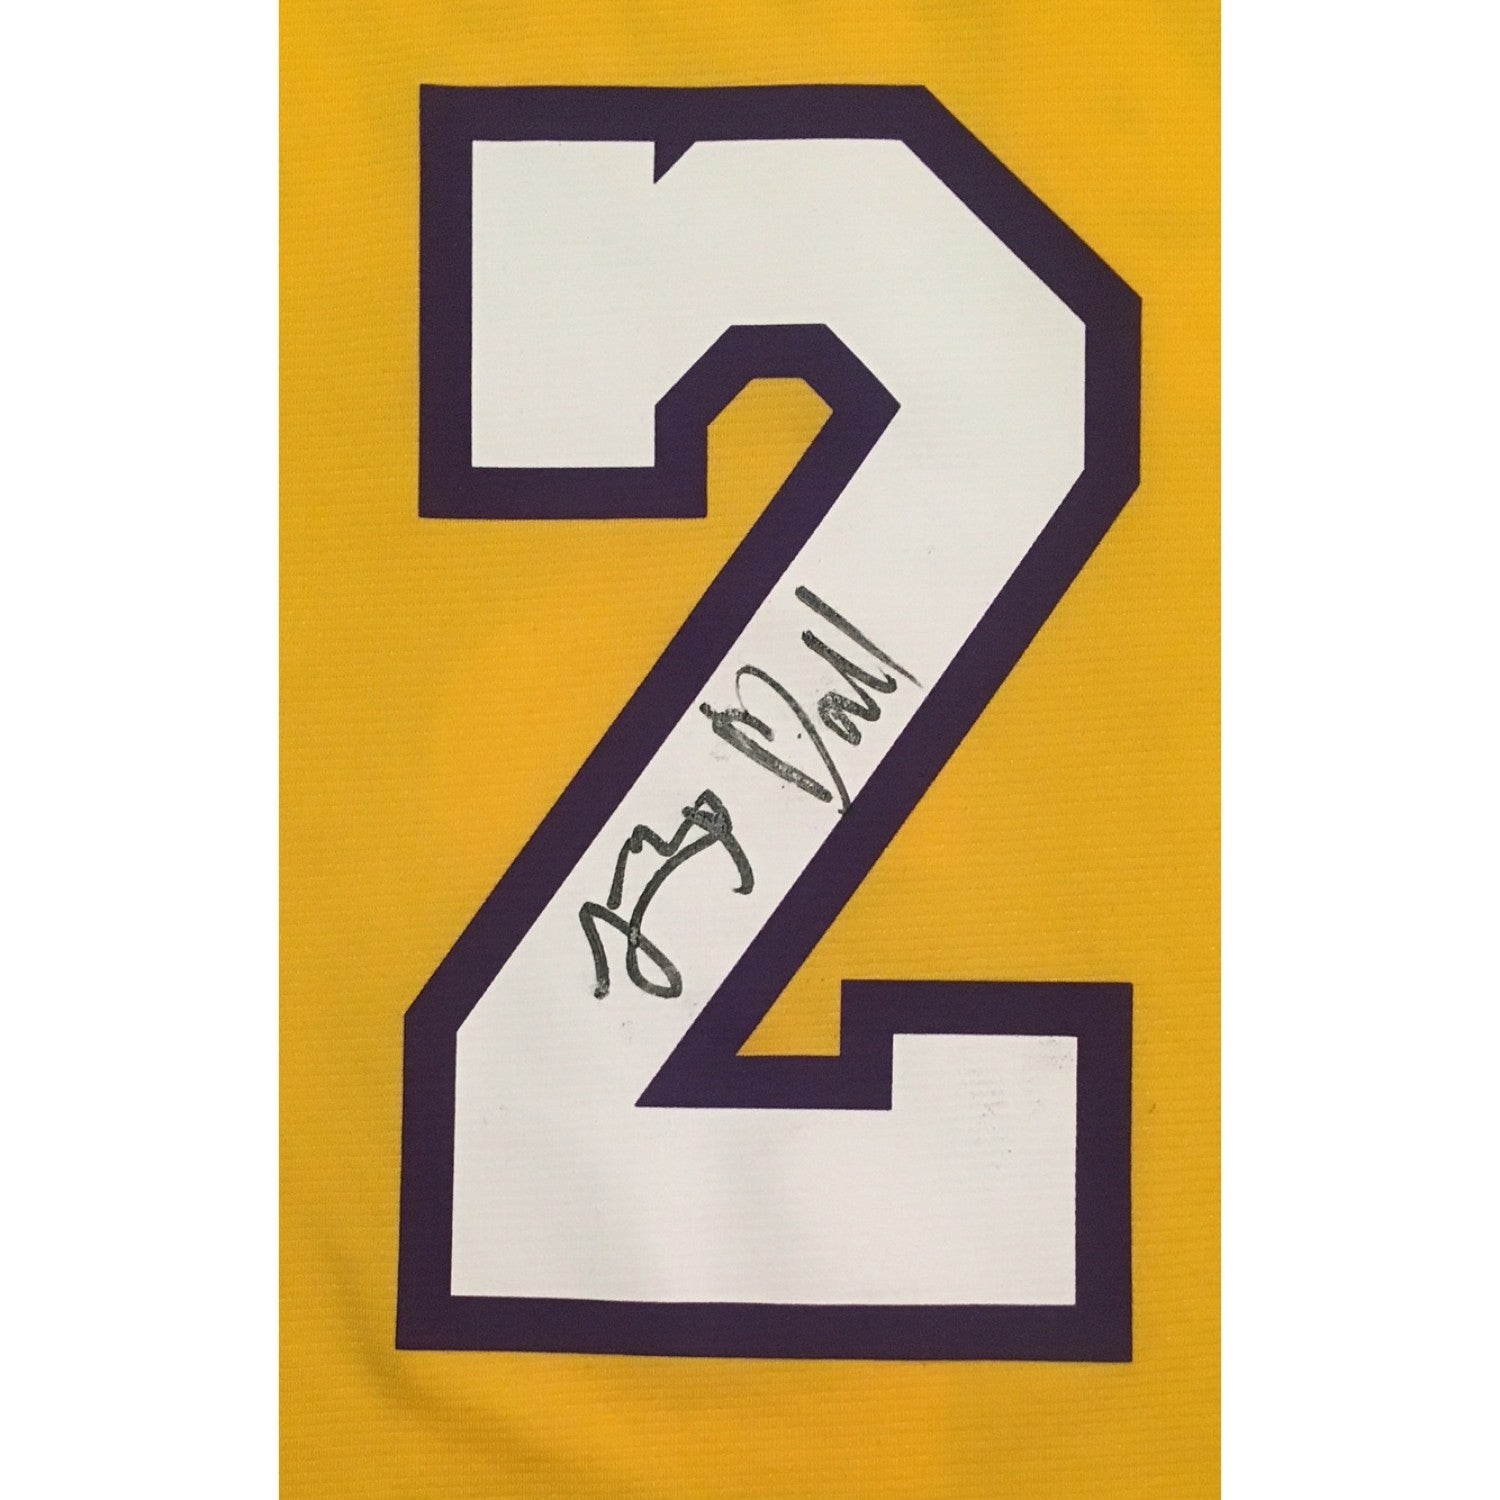 d0c0b9a12 Shop Lonzo Ball Autographed Los Angeles Lakers Signed Basketball Jersey  Beckett BAS COA 2 - Free Shipping Today - Overstock - 20534823